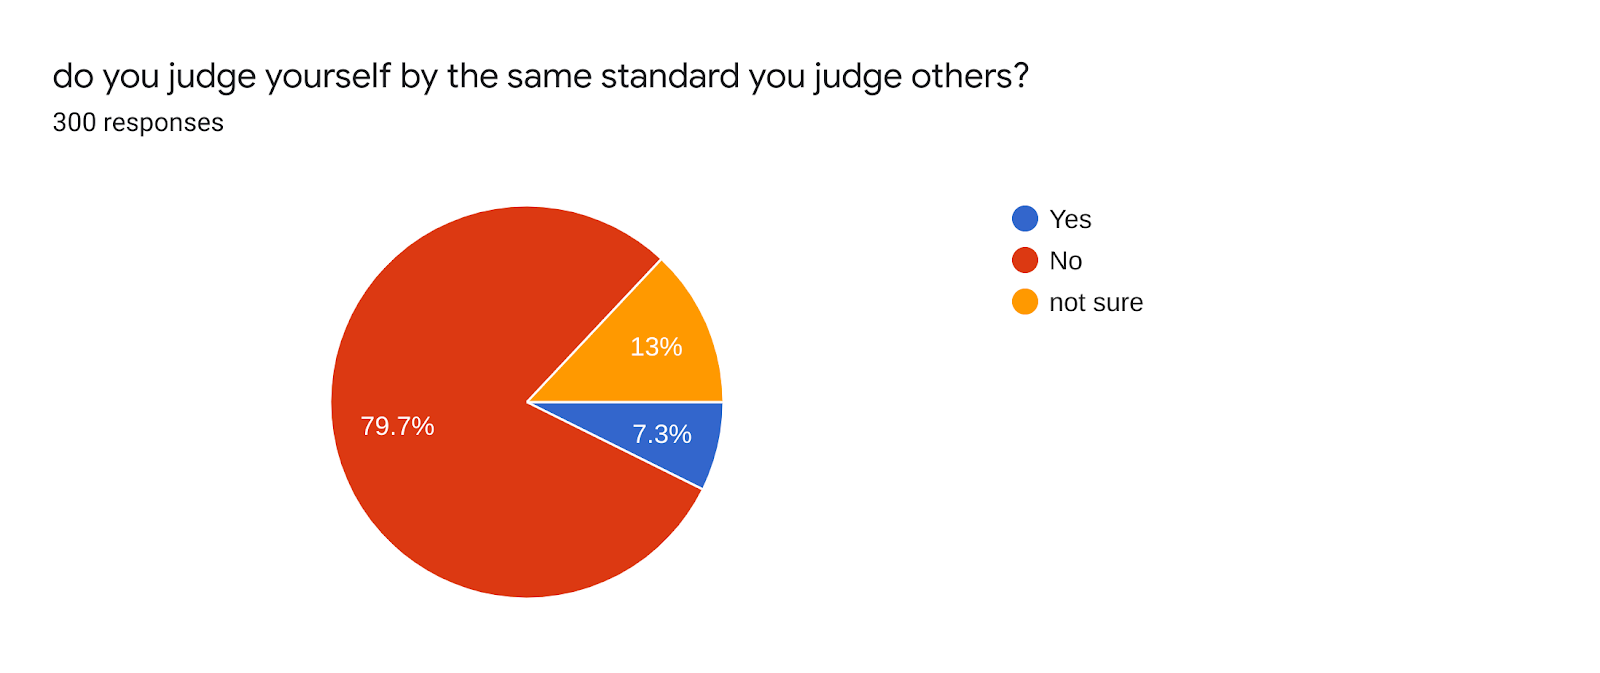 Forms response chart. Question title: do you judge yourself by the same standard you judge others?. Number of responses: 300 responses.